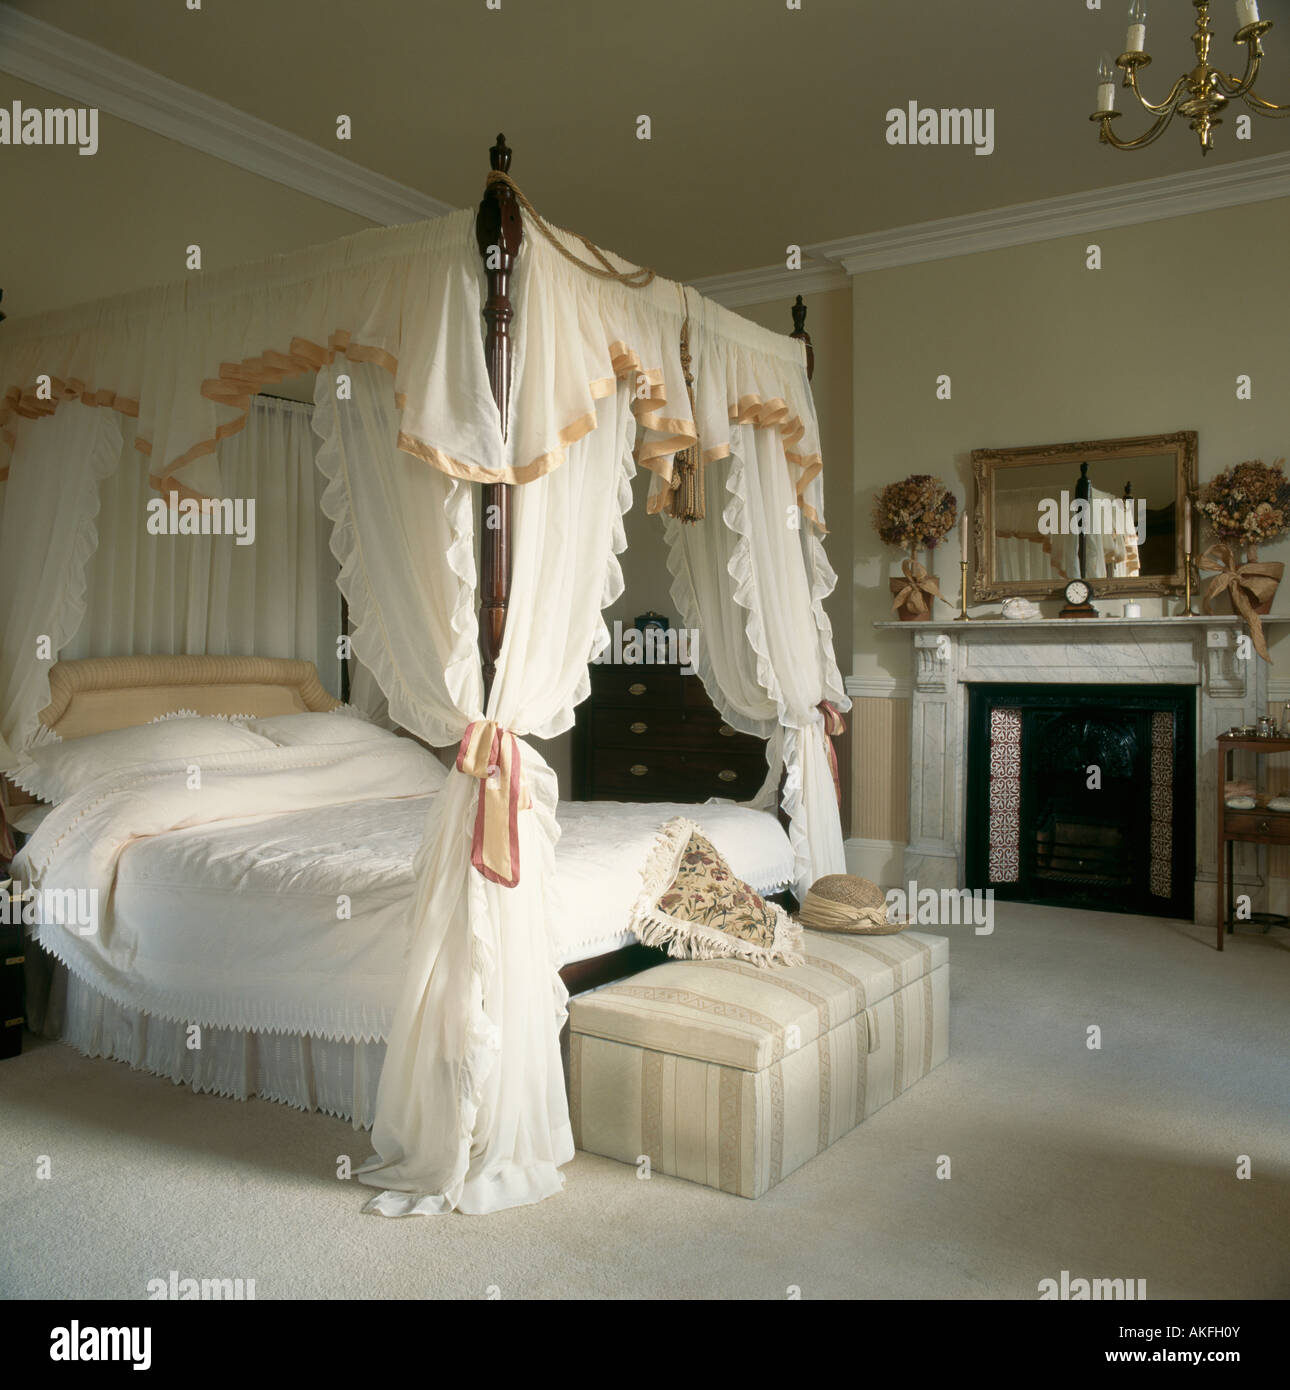 Silk edged white canopy and curtains on four poster bed with white linen in bedroom with fireplace and grey carpet : silk bed canopy - memphite.com